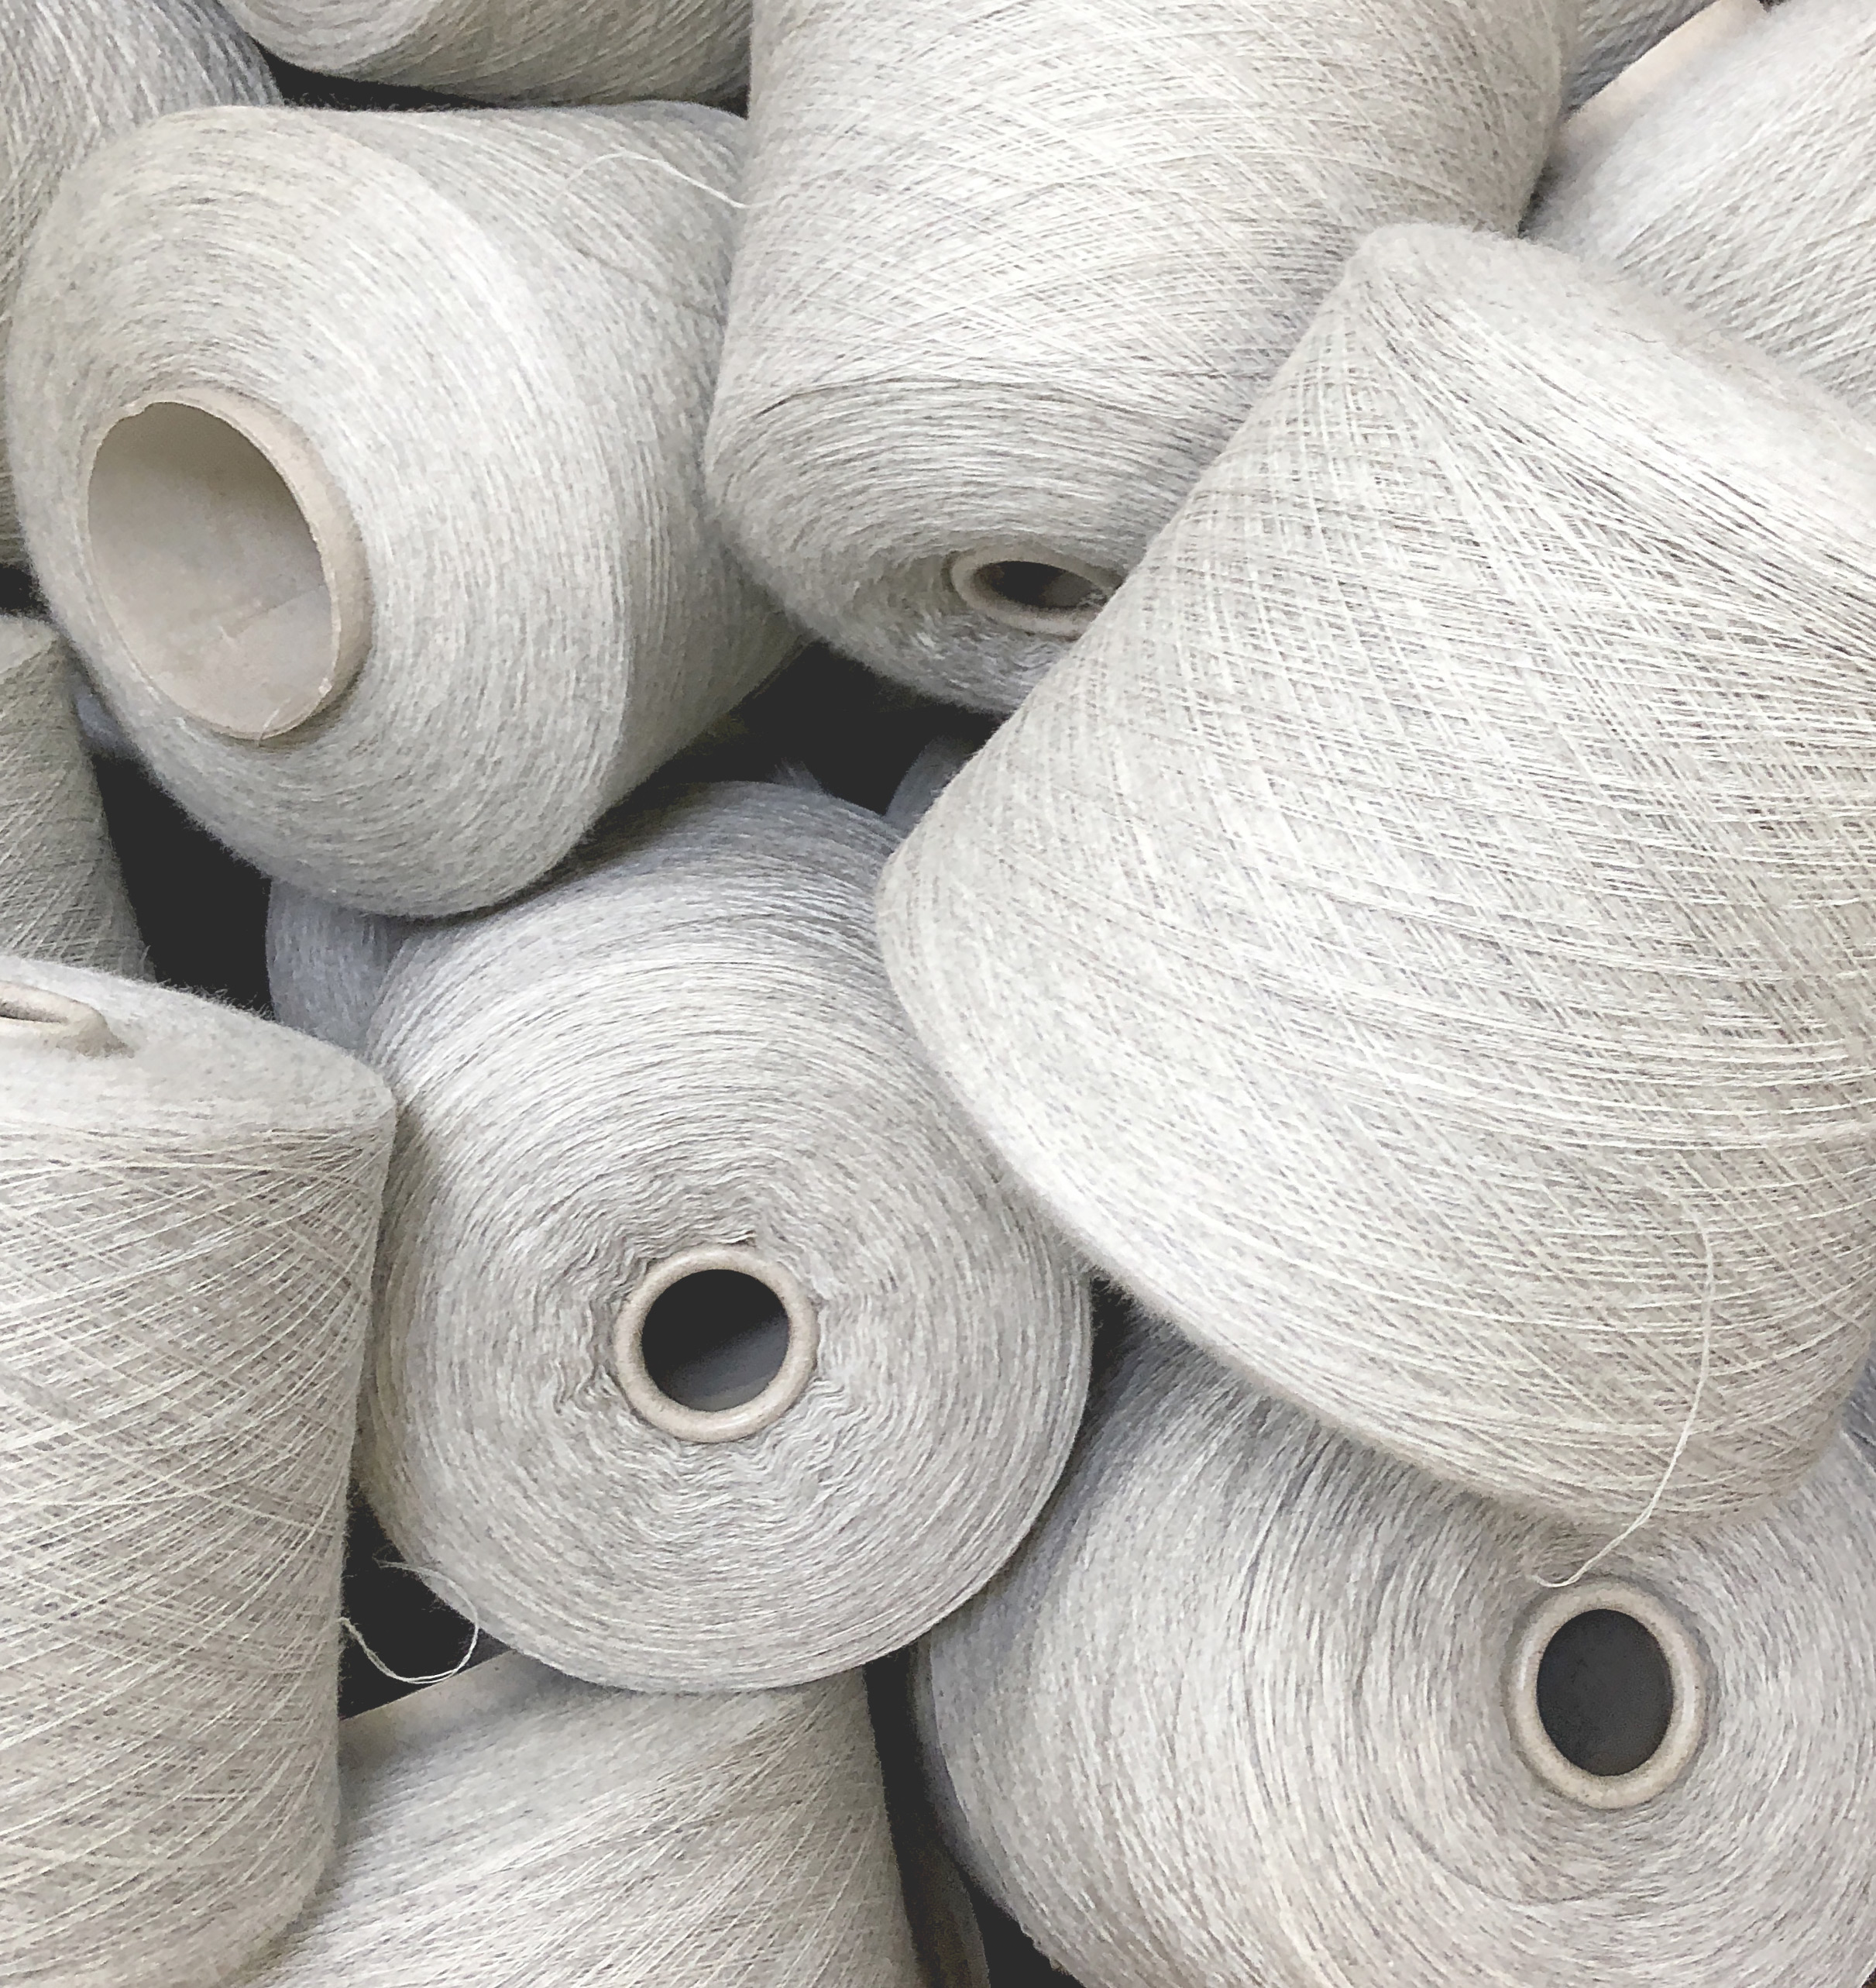 Spools of yarn made from wool from sheep raised sustainably